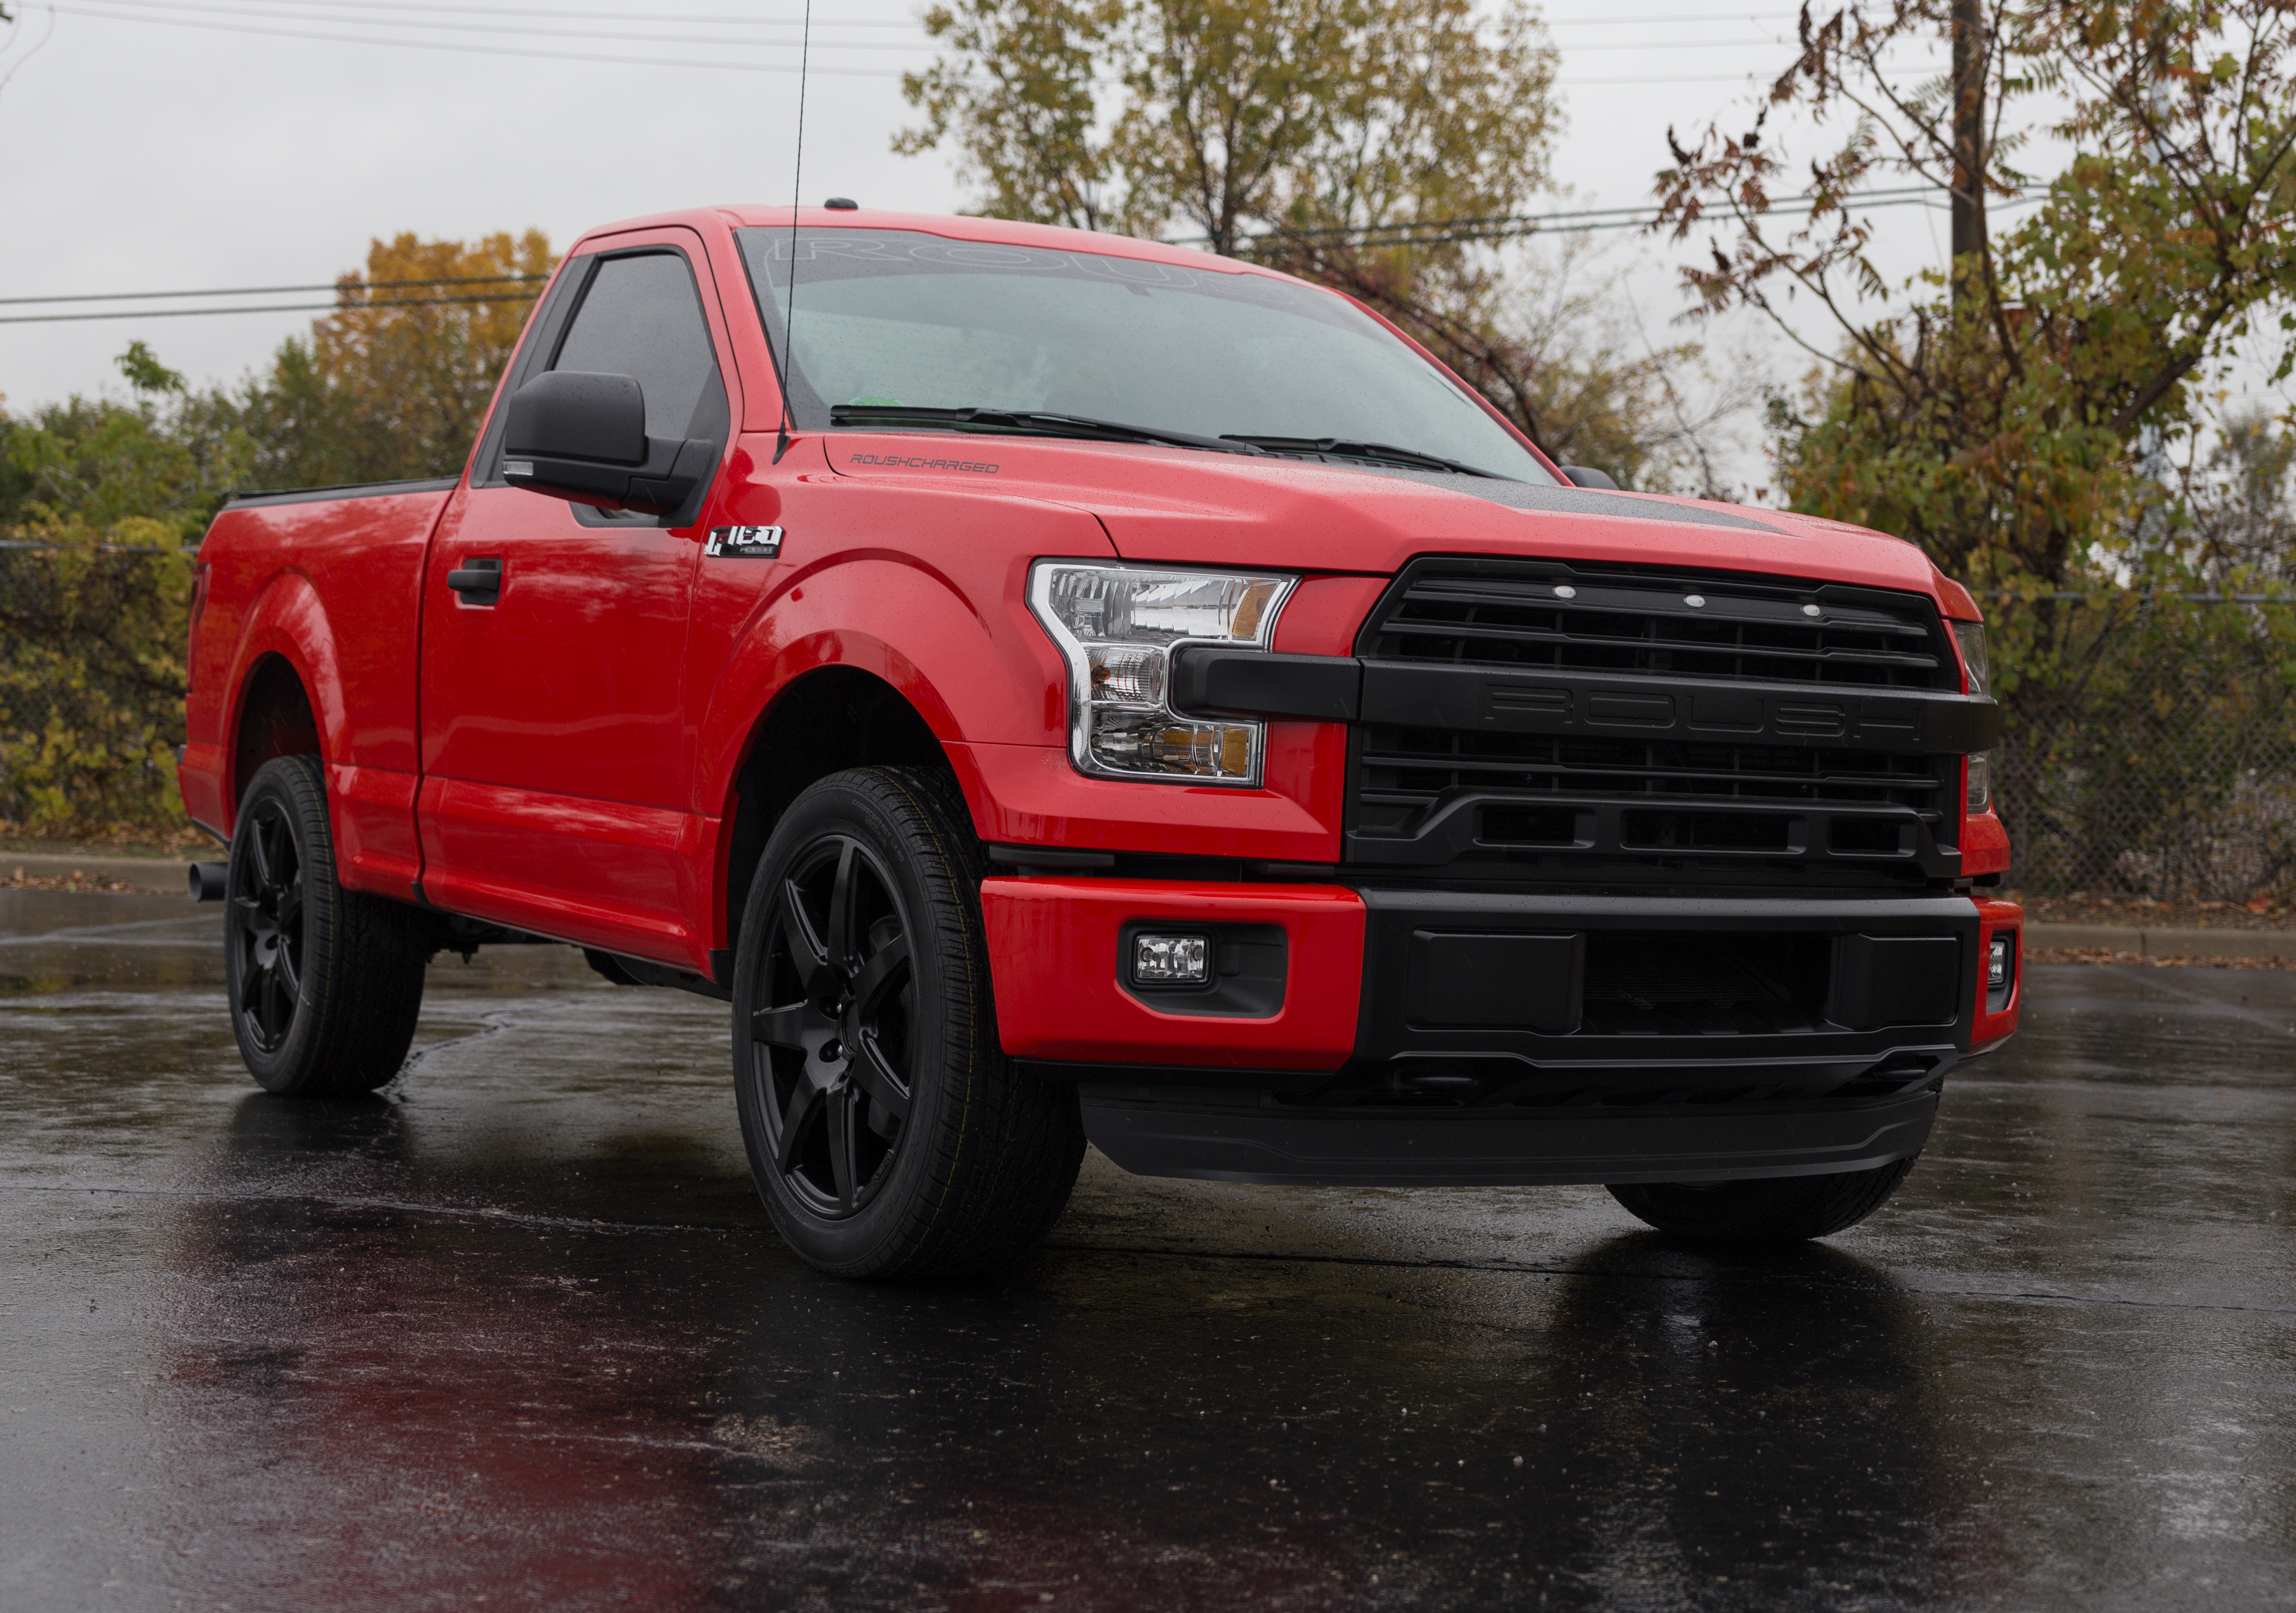 2017 ROUSH F-150 Nitemare: The Nitemare You WANT To Have